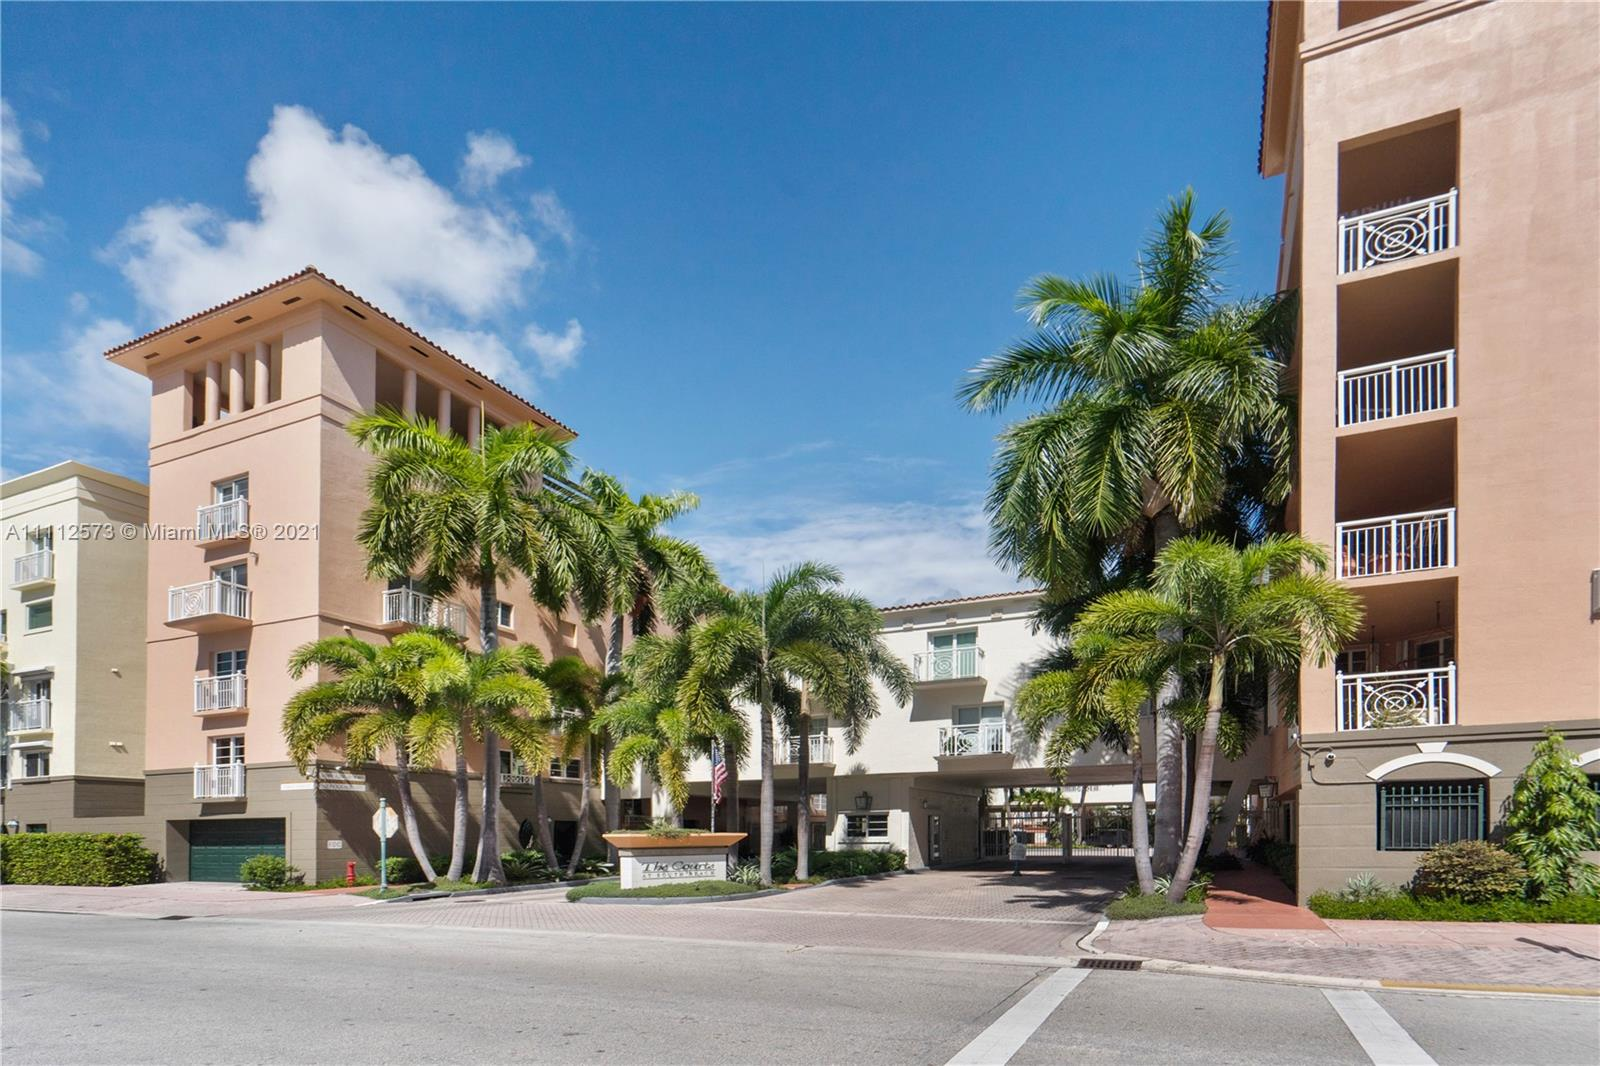 THE COURTS AT SOUTH BEACH Condo,For Sale,THE COURTS AT SOUTH BEACH Brickell,realty,broker,condos near me